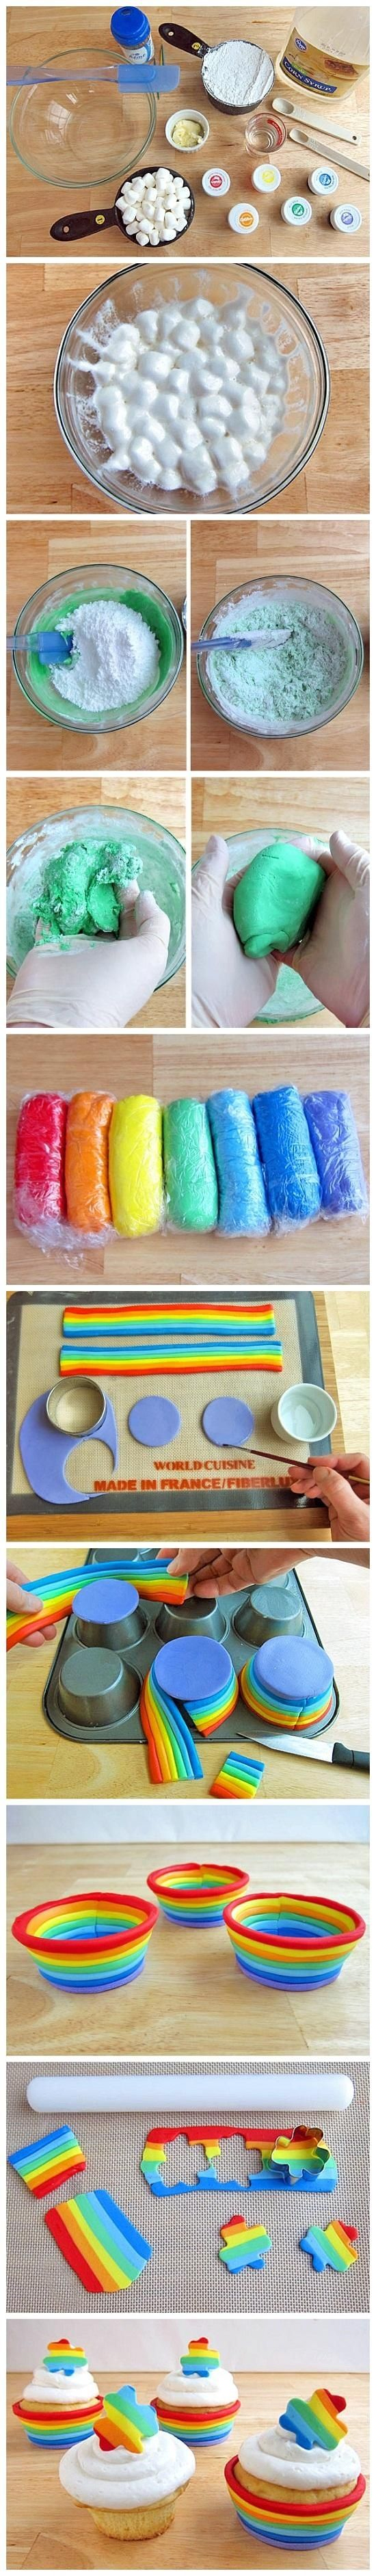 rainbow cupcakes_ Ingredients 2 tablespoons shortening or butter 16 ounces mini marshmallows 4 tablespoons water 2 teaspoons corn syrup optional, flavored oil or extract 2 pounds confectioners (powdered) sugar paste or gel coloring – violet, indigo, blue, green, yellow, orange, red 12 baked cupcakes (baked in the same muffin tin you use to make the fondant cups) frosting optional decorations, gold luster dust, gold edible glitter, sprinkles